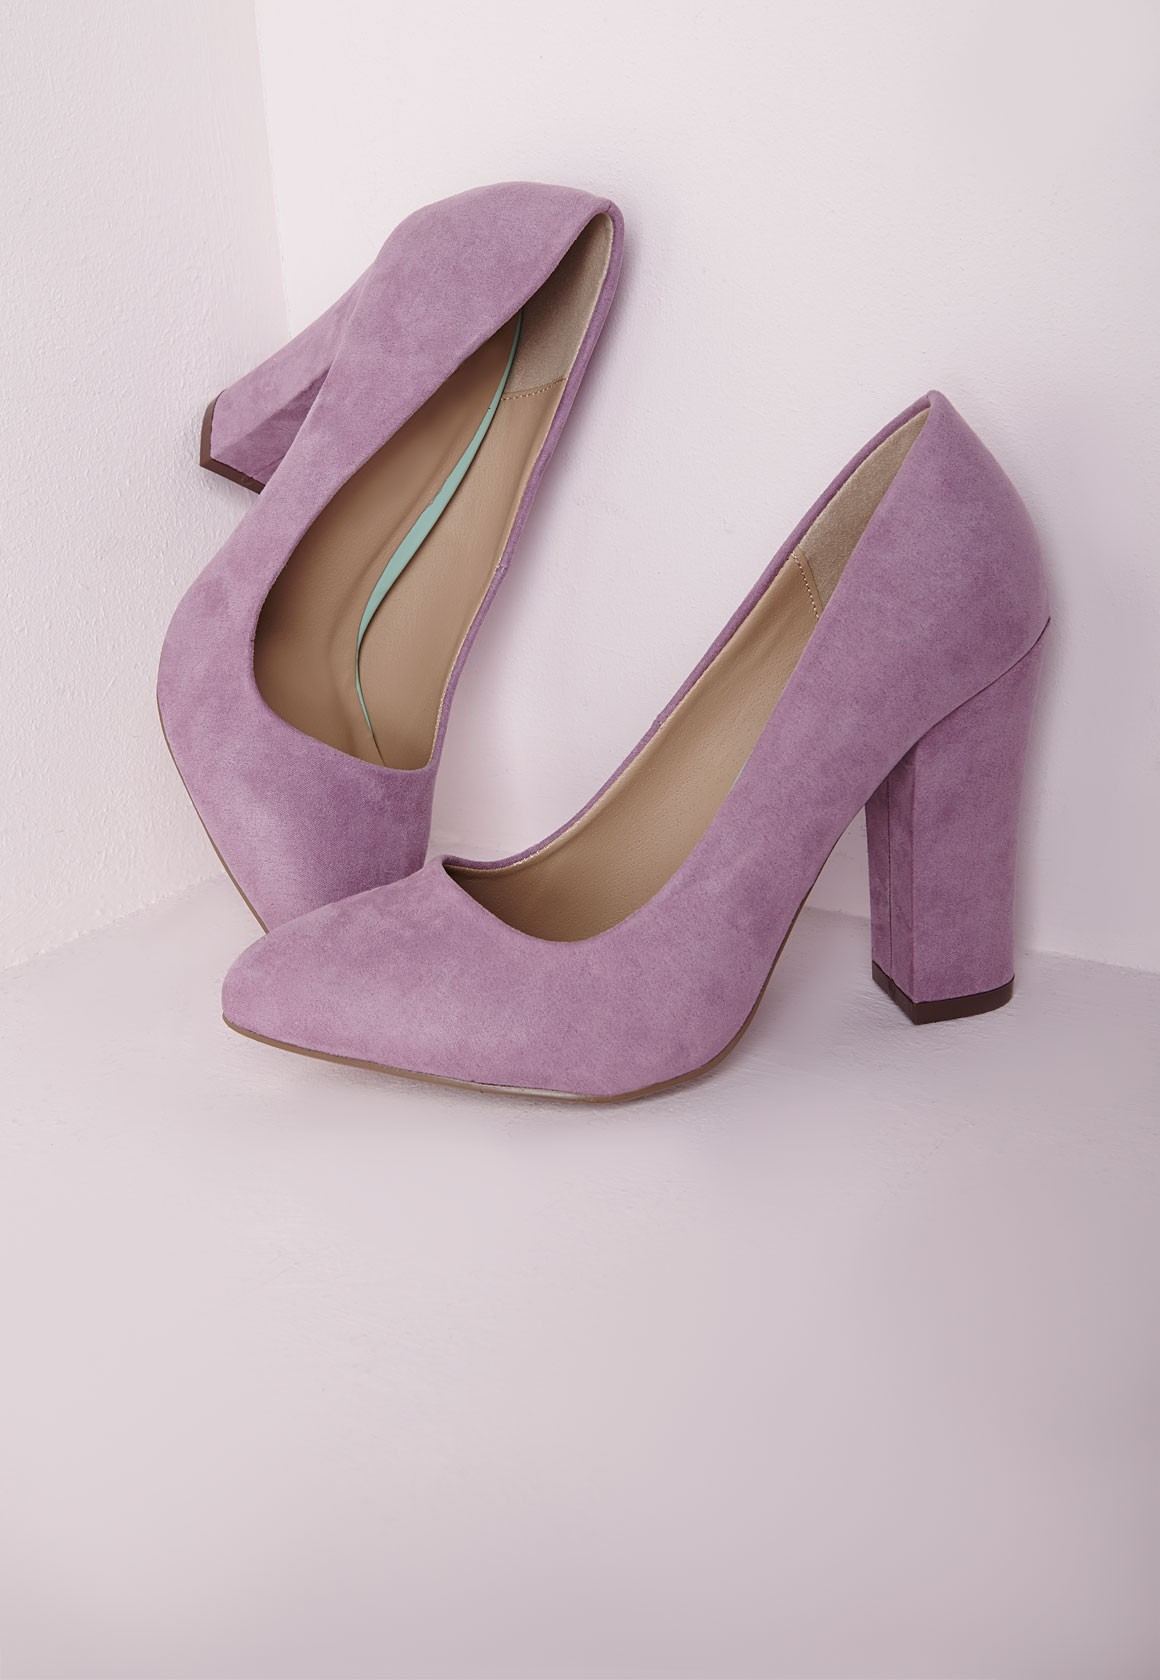 Lyst - Missguided Block Heel Court Shoes Lilac in Purple